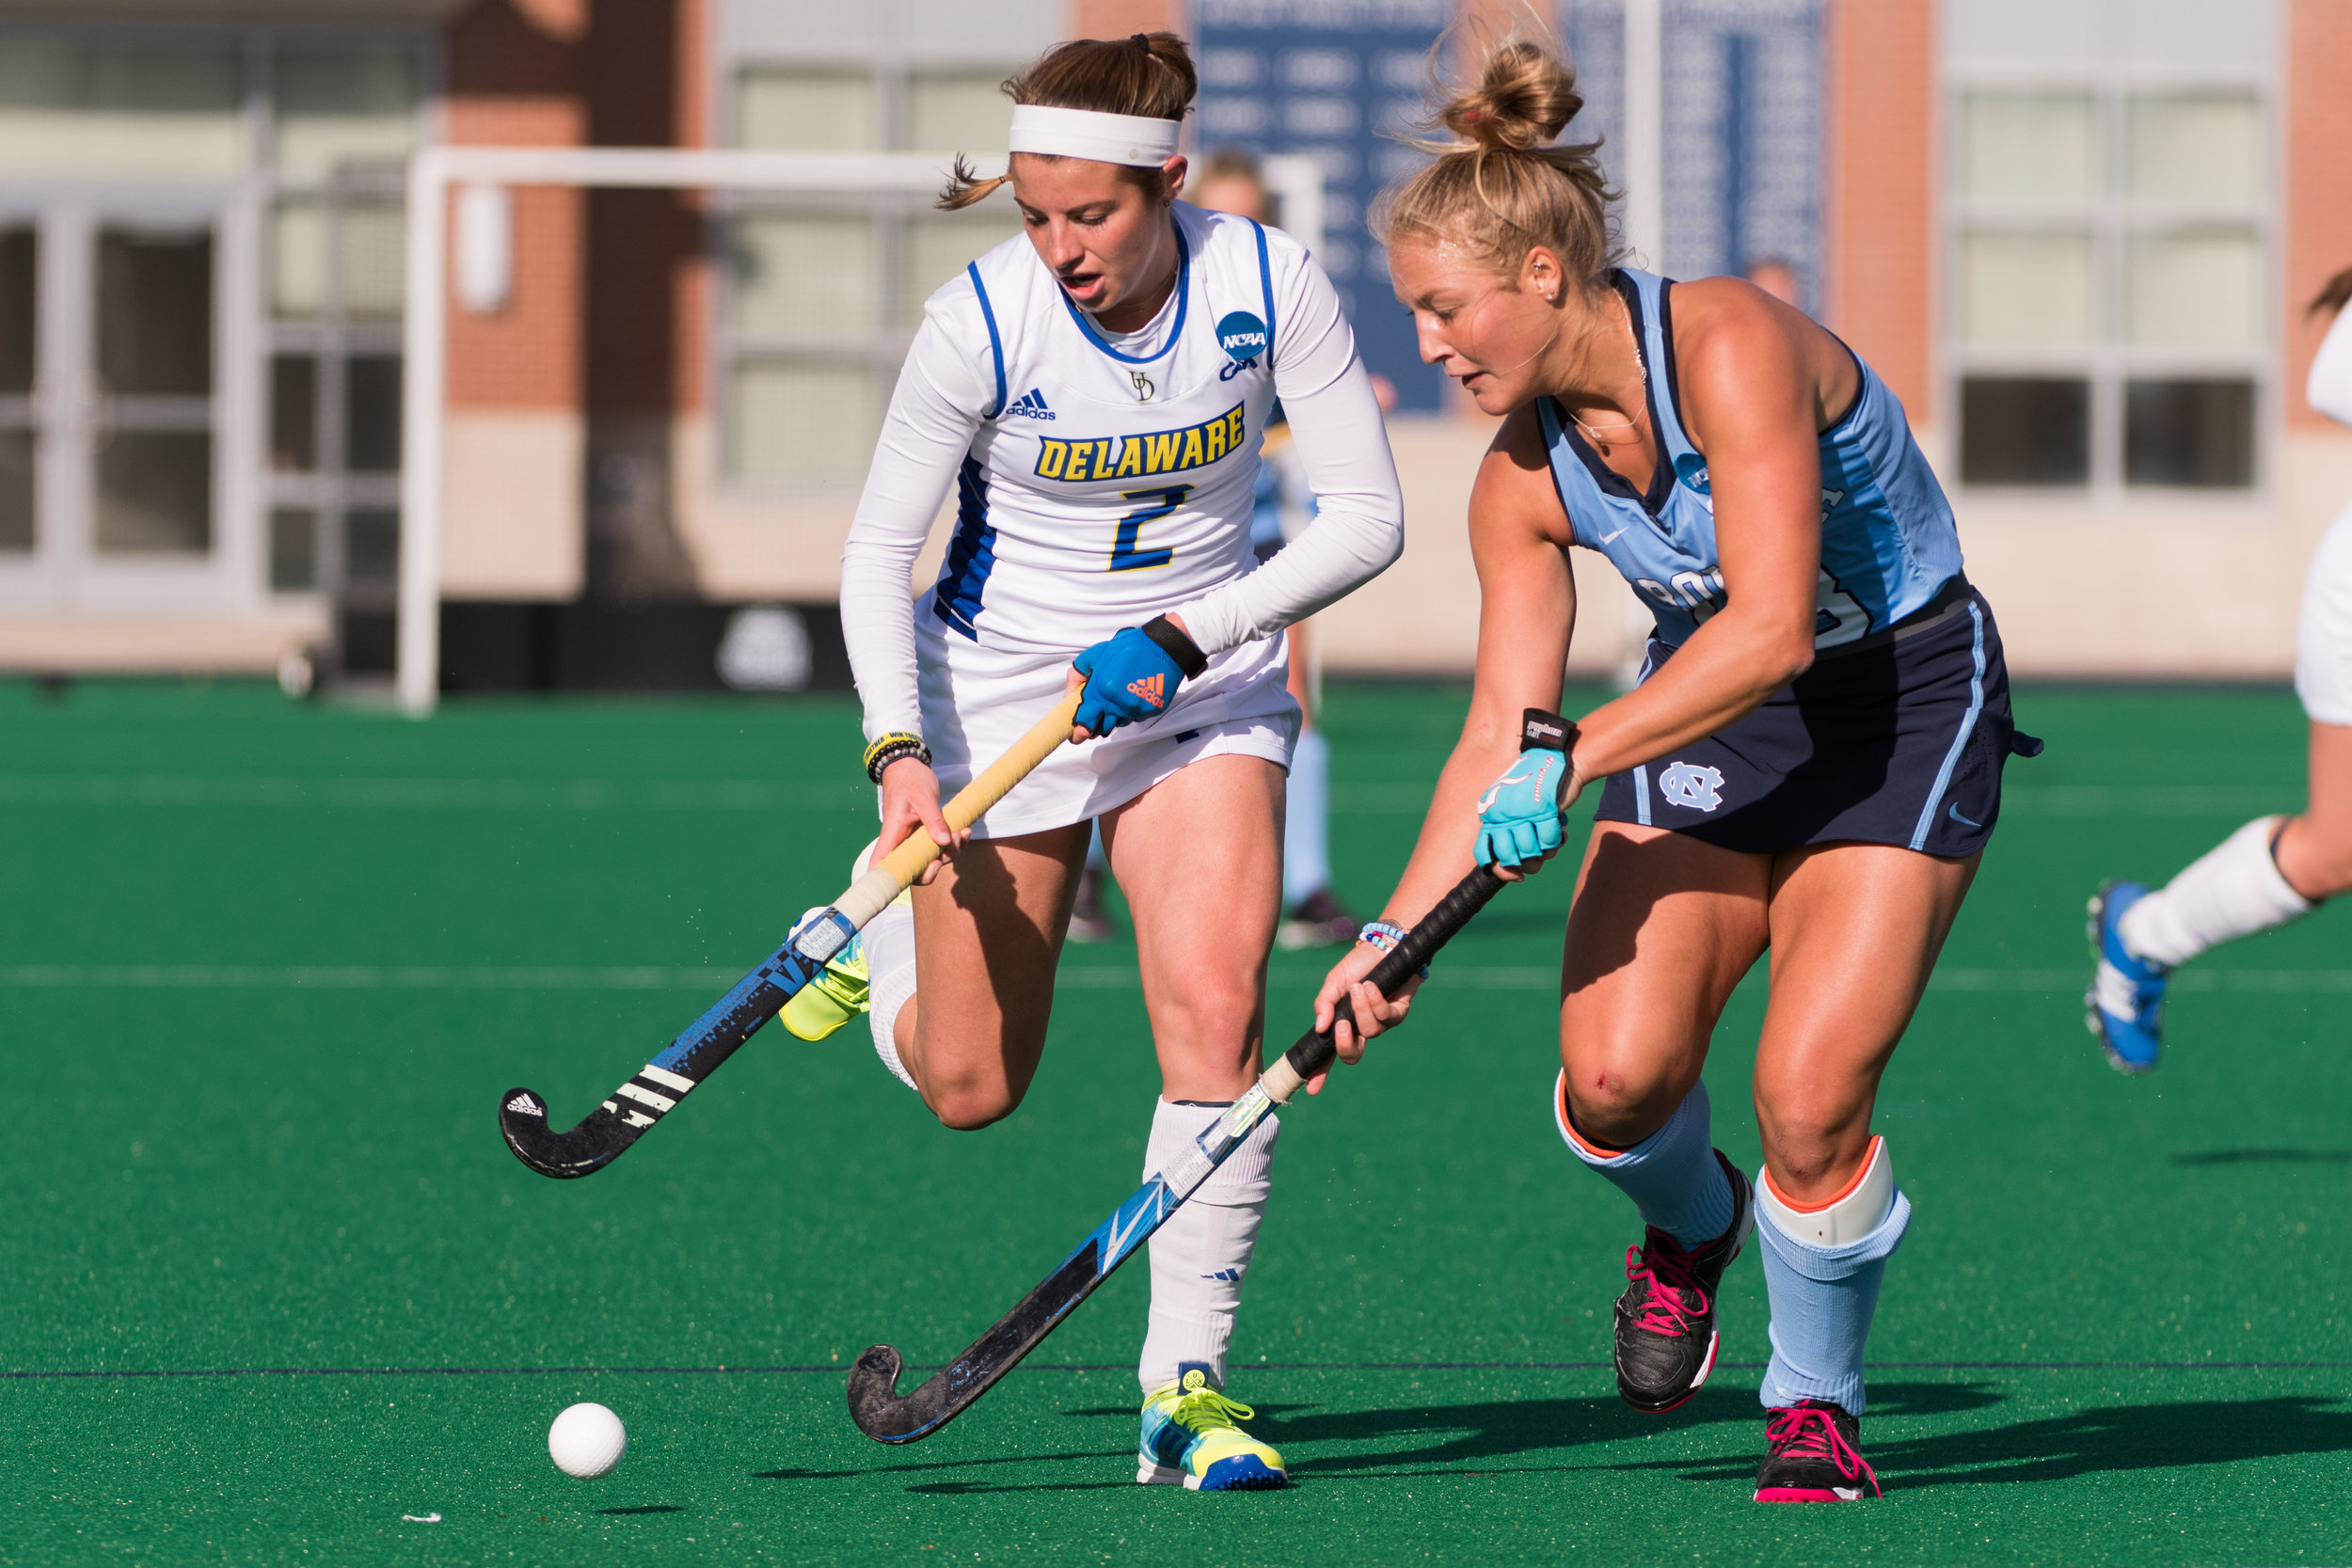 North Carolina midfielder Ashley Hoffman (13) and Delaware forward Taylor Lister (2) in action during the 2016 NCAA DI National Championship at the L.R. Hill Sports Complex in Norfolk, VA. Delaware defeated North Carolina 3-2.